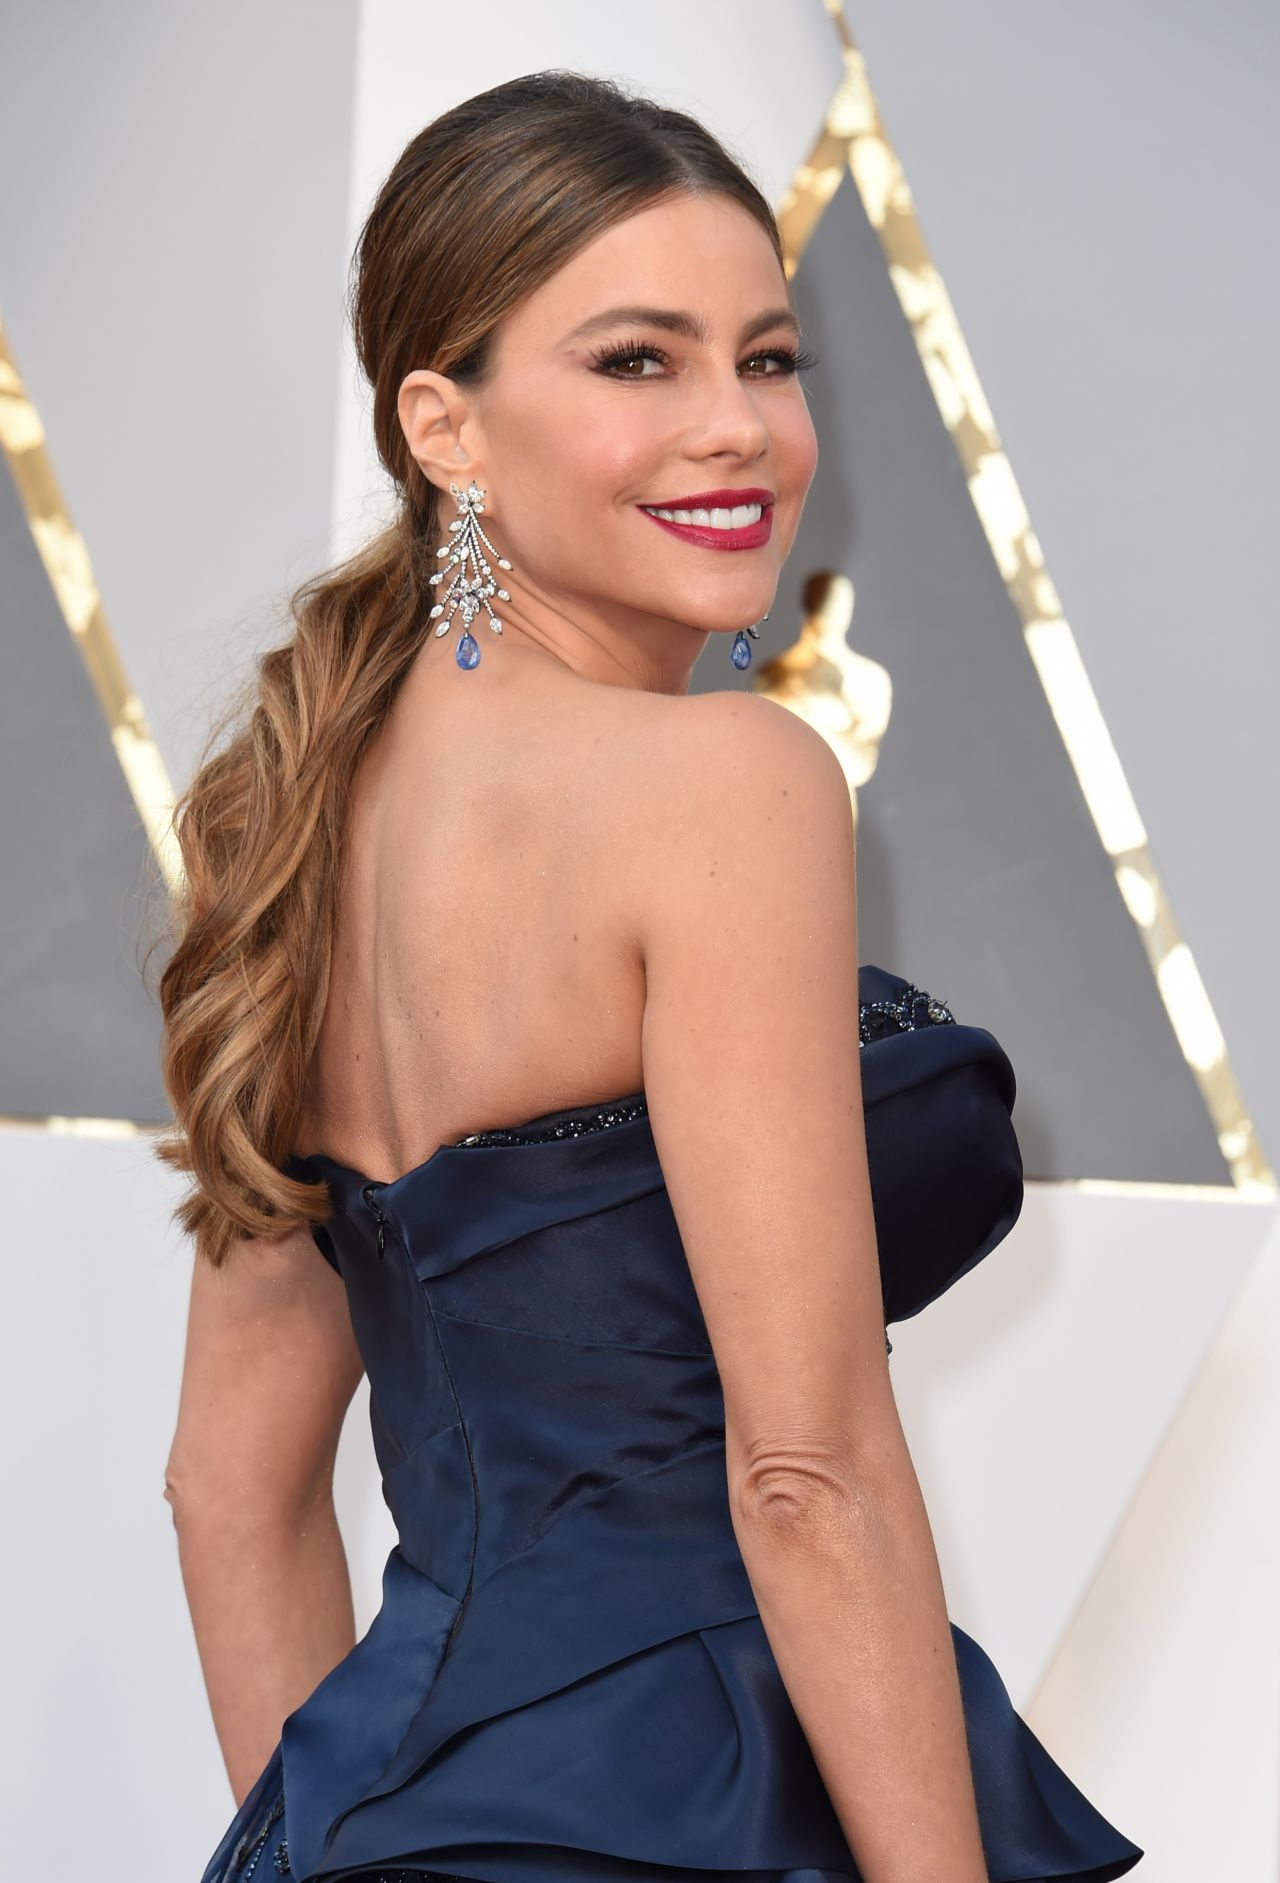 sofía-vergara-oscars-2016-in-hollywood-part-ii-8